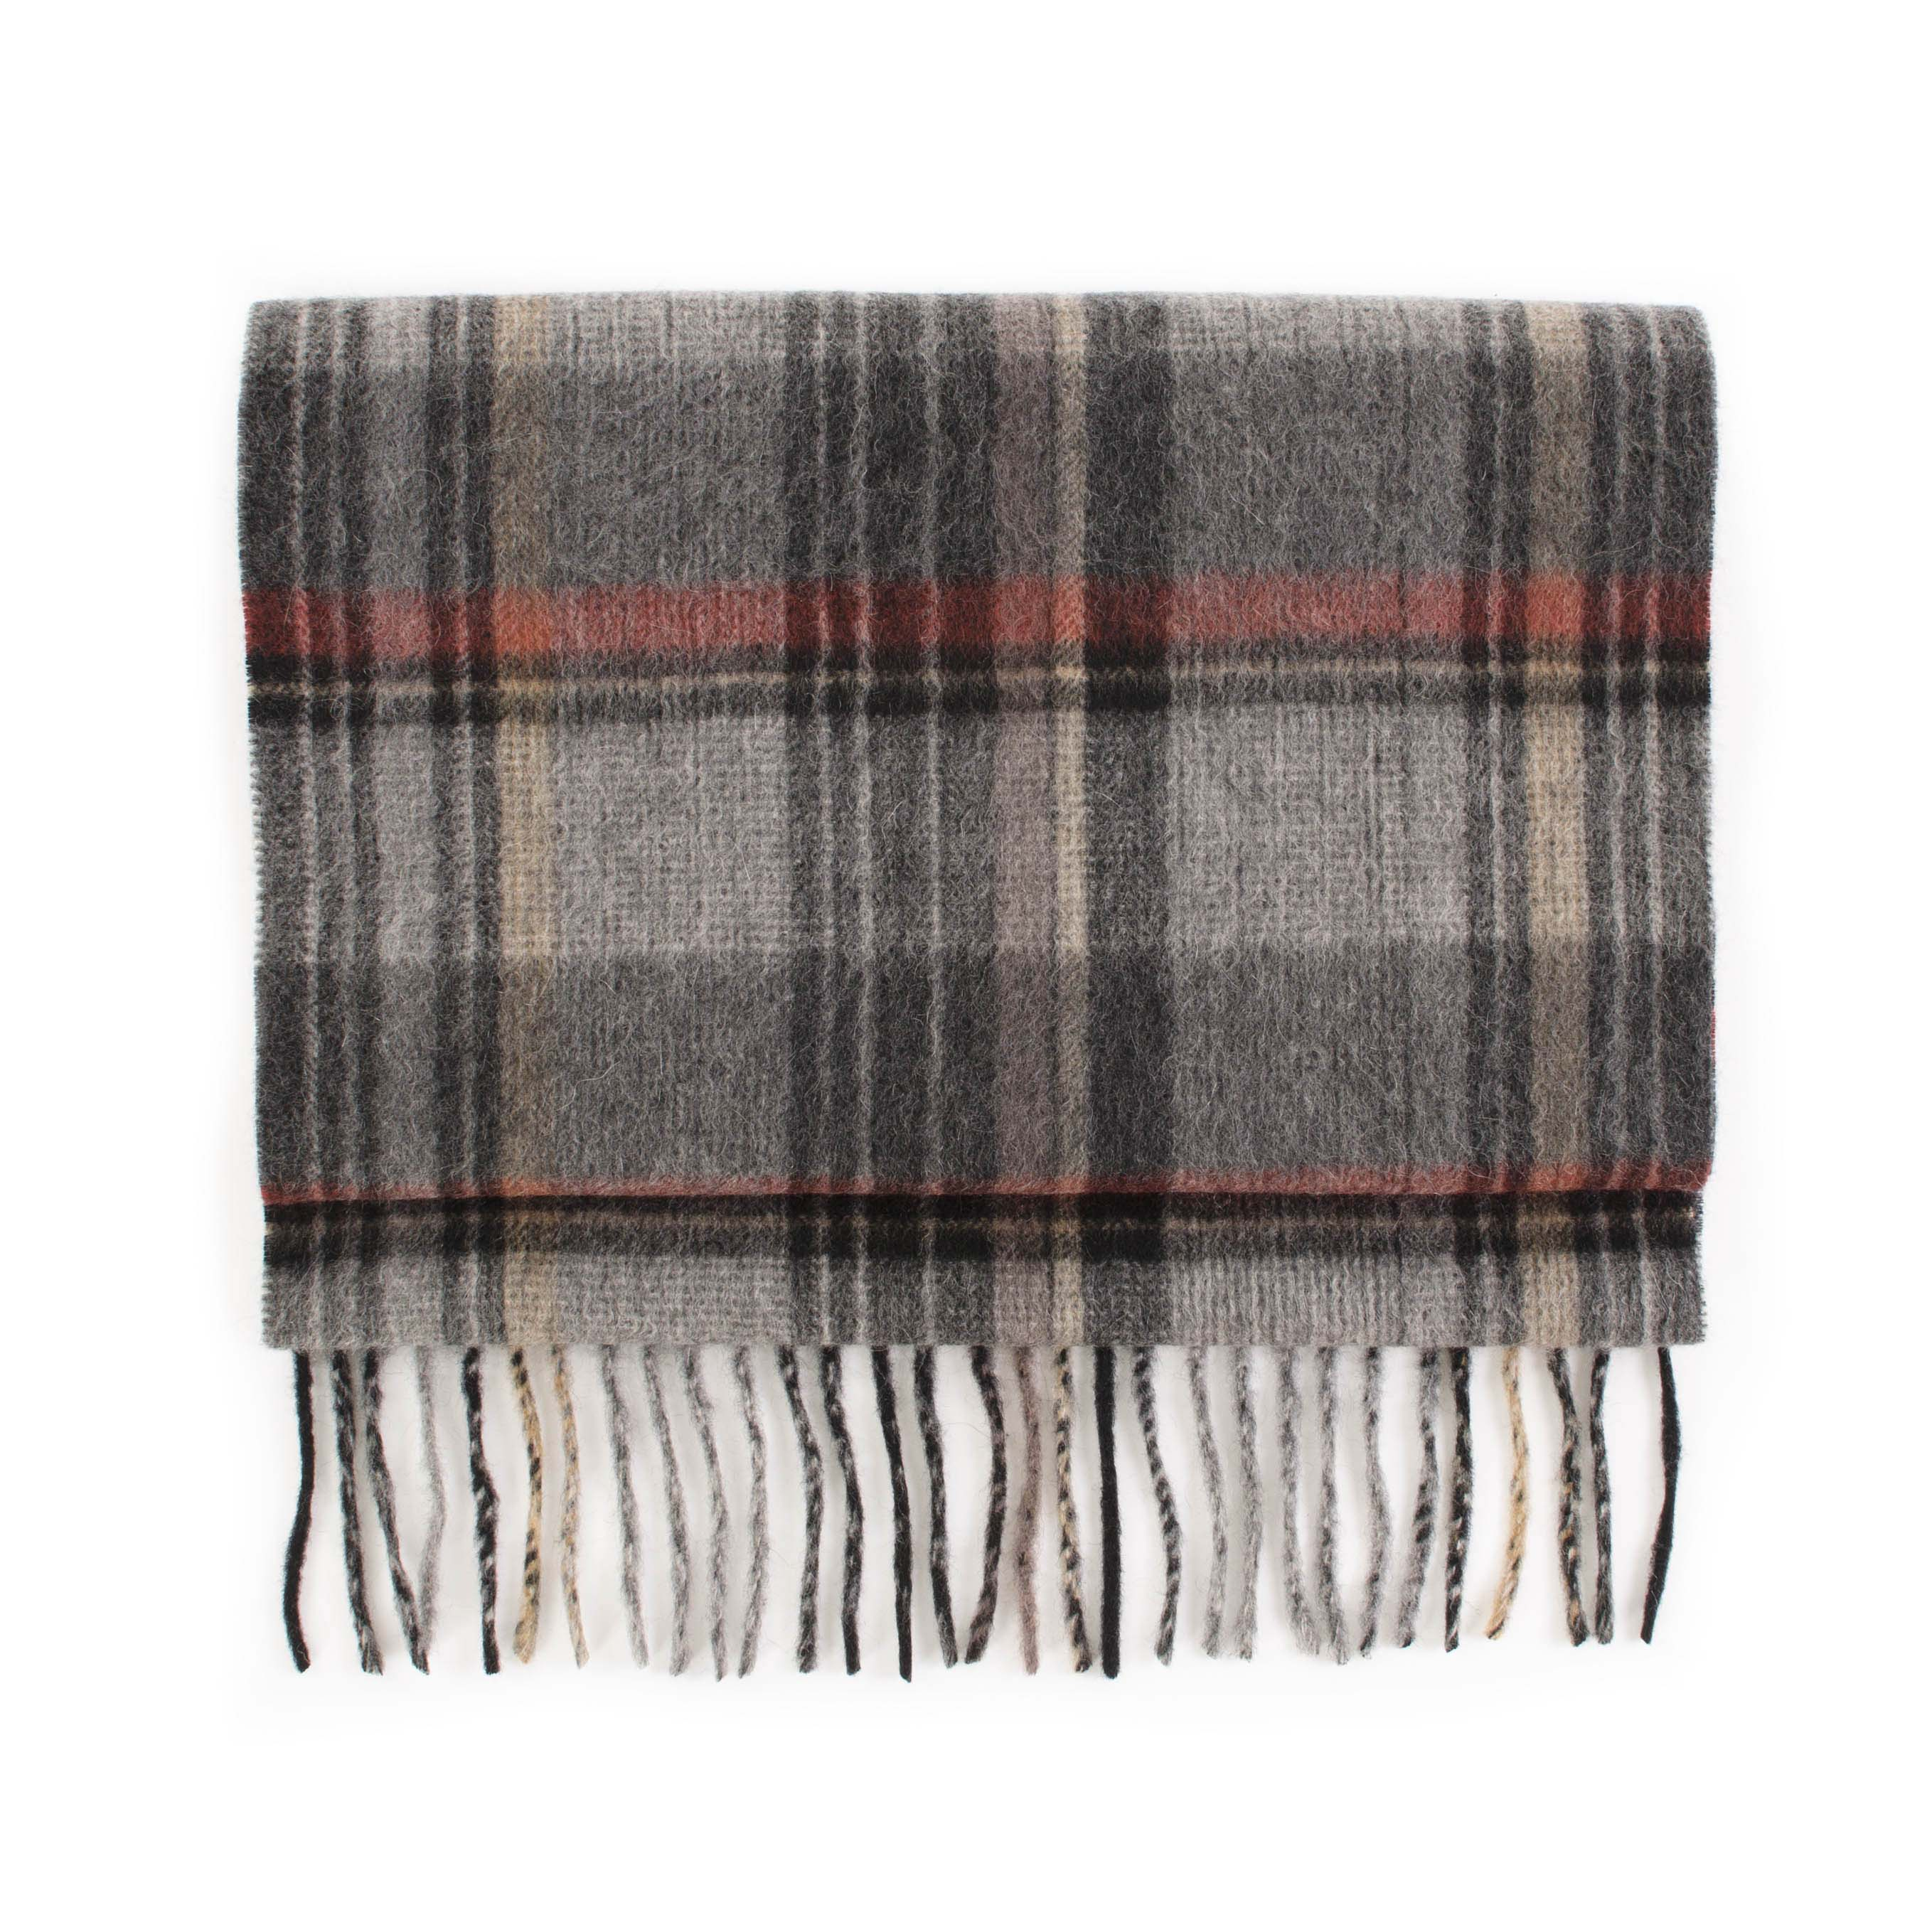 Cashmere scarf check, grey, red